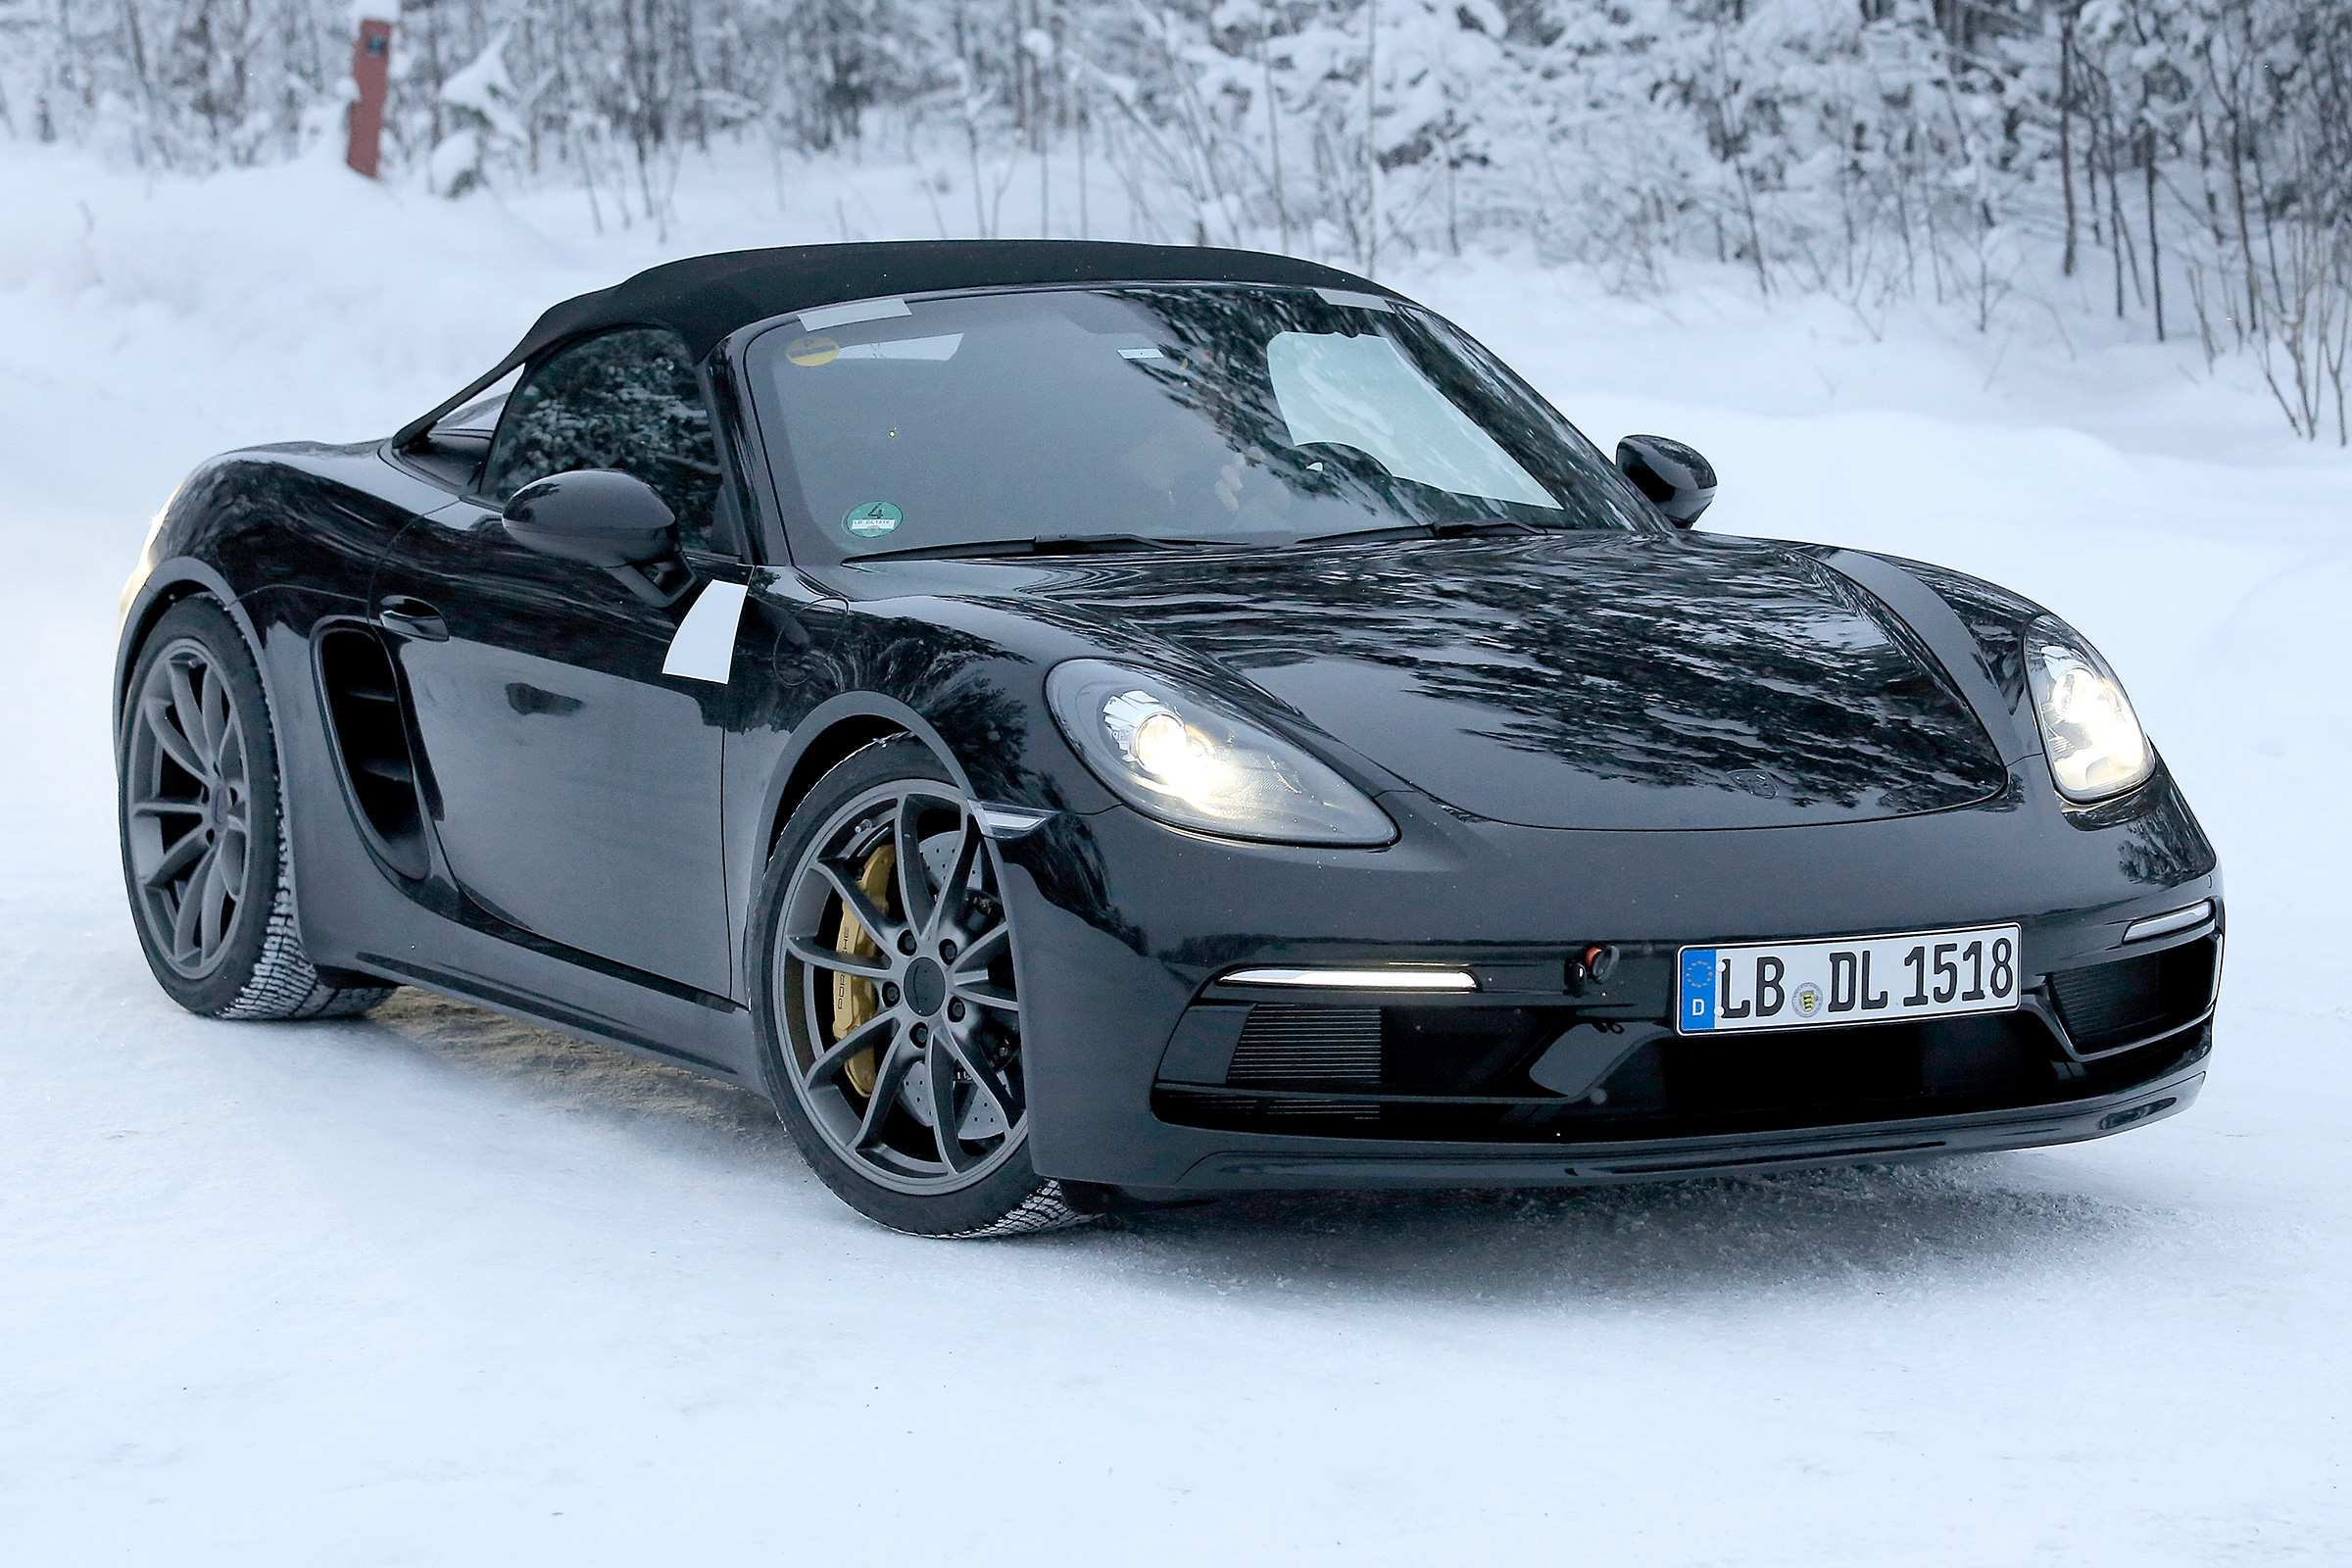 98 The 2019 Porsche Boxster Spyder Price Design And Review